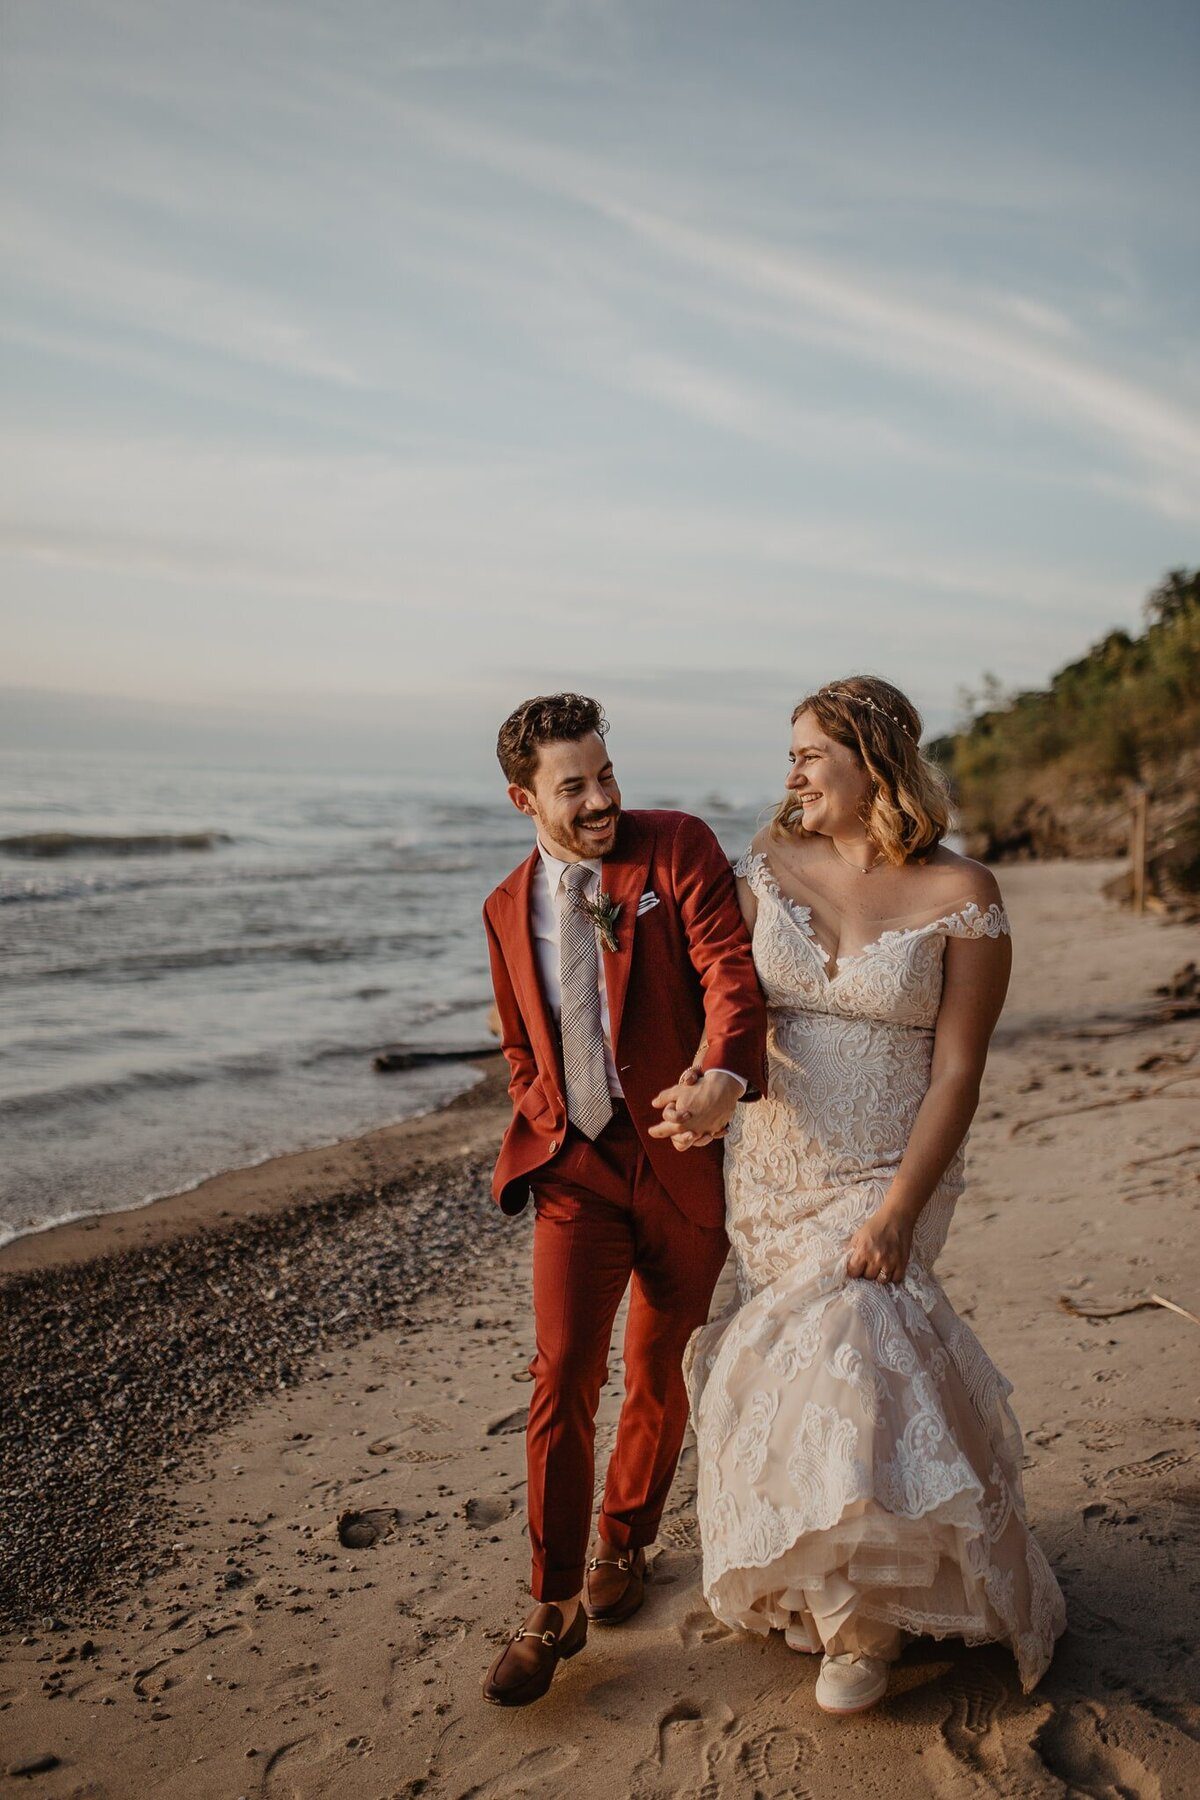 Alaina-Brian-Beach-Wedding-645-JessyHermanPhoto